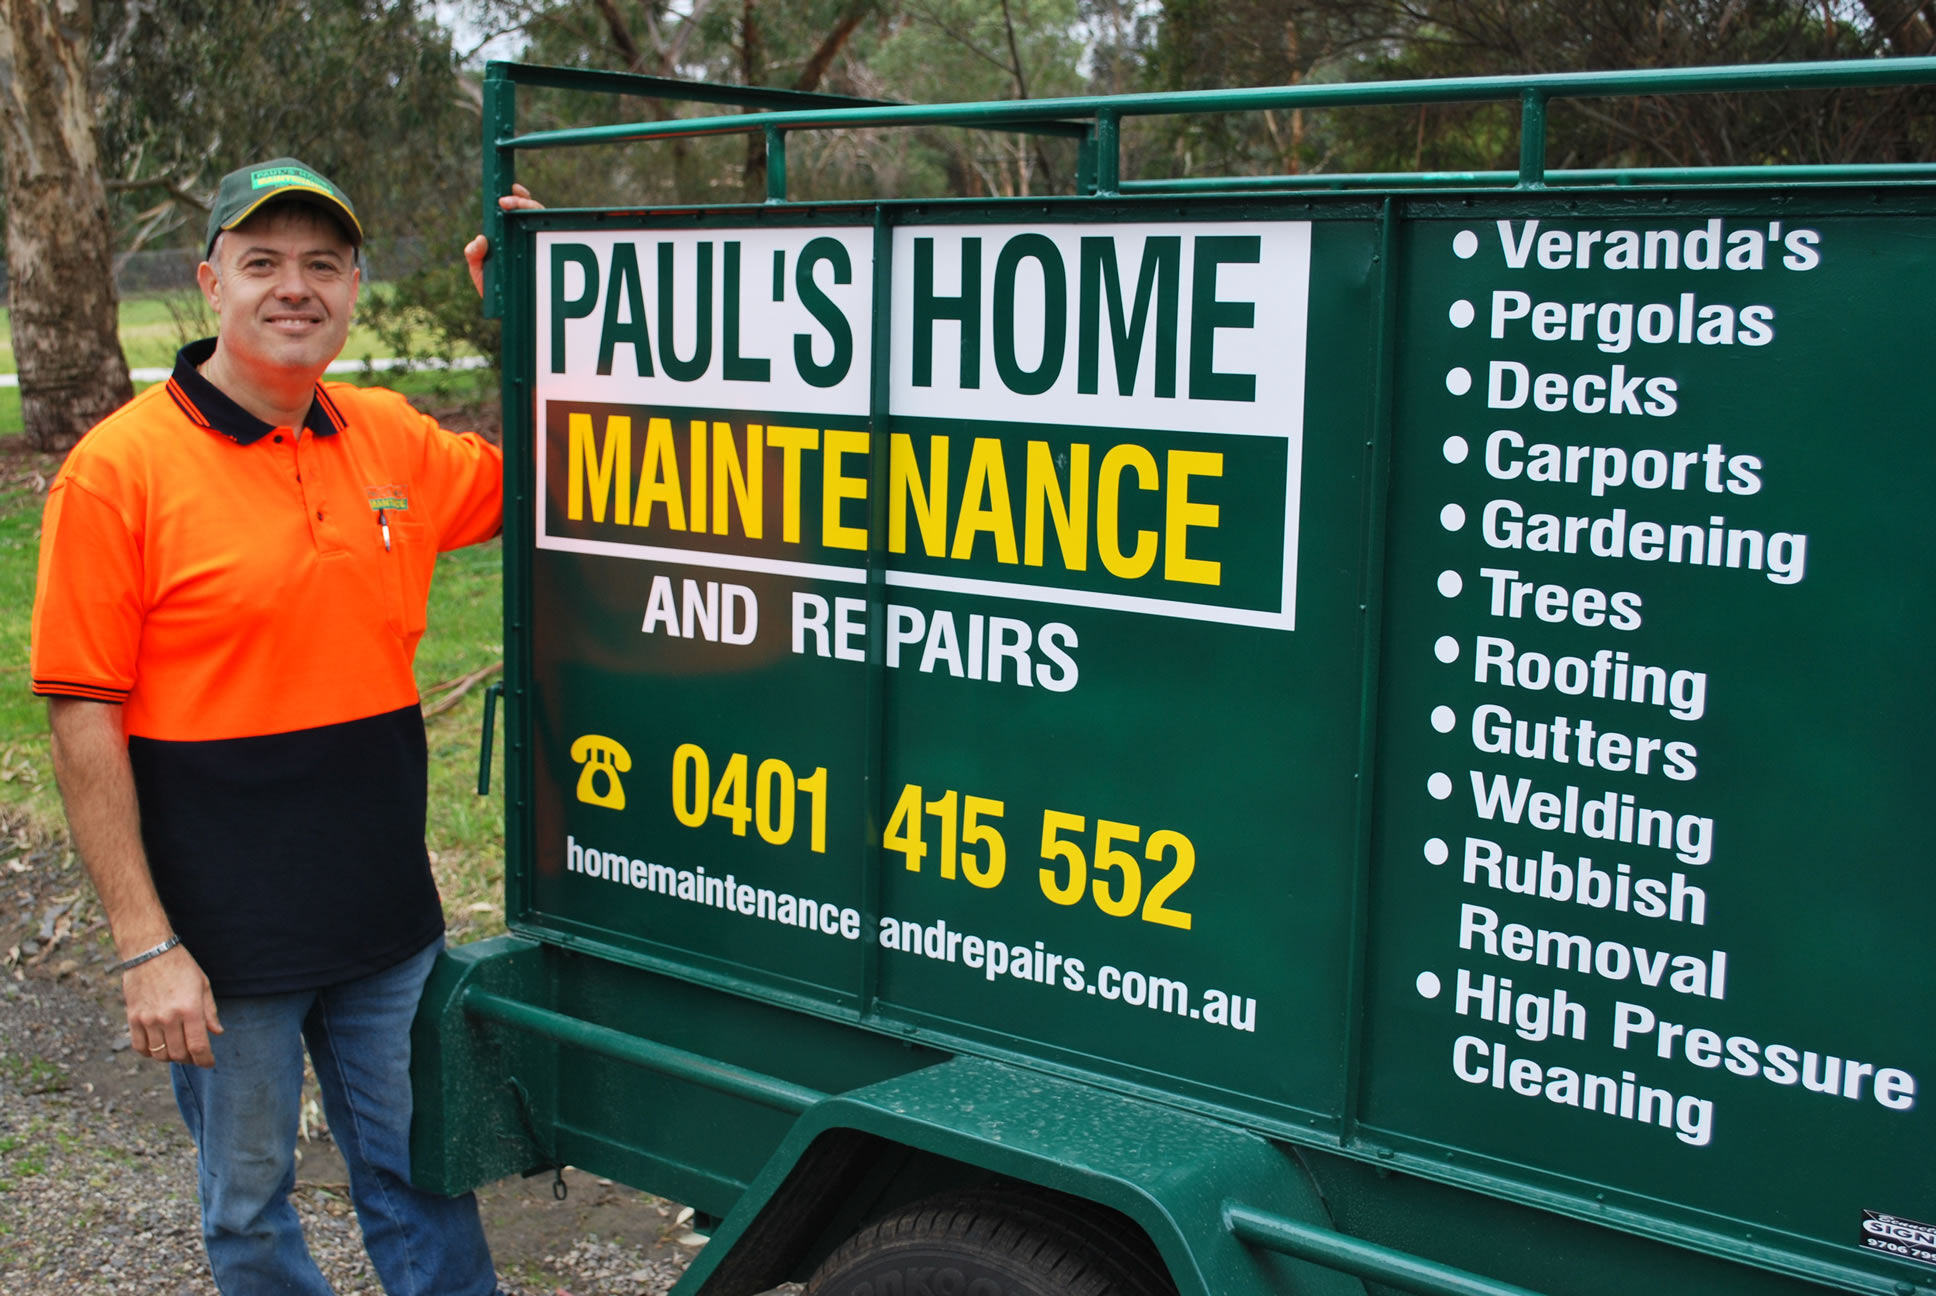 Paul's Home Maintenance and Repairs